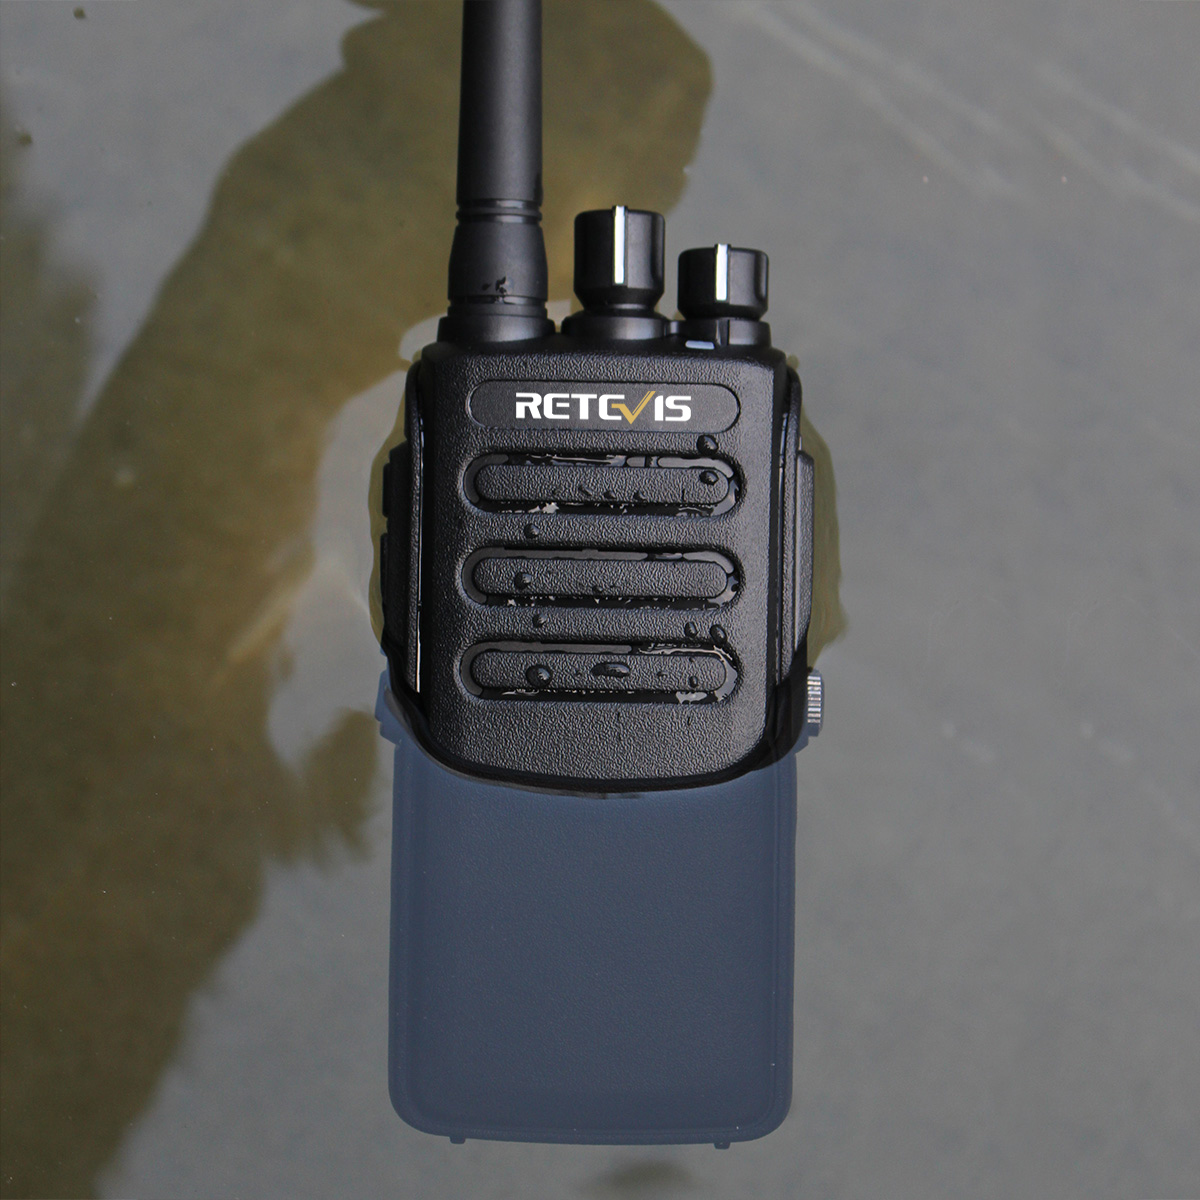 Powerful DMR Digital Walkie Talkie Retevis RT81 Waterproof IP67 UHF VOX Long Range Two-way Radio For Farm Warehouse Factory Hunt